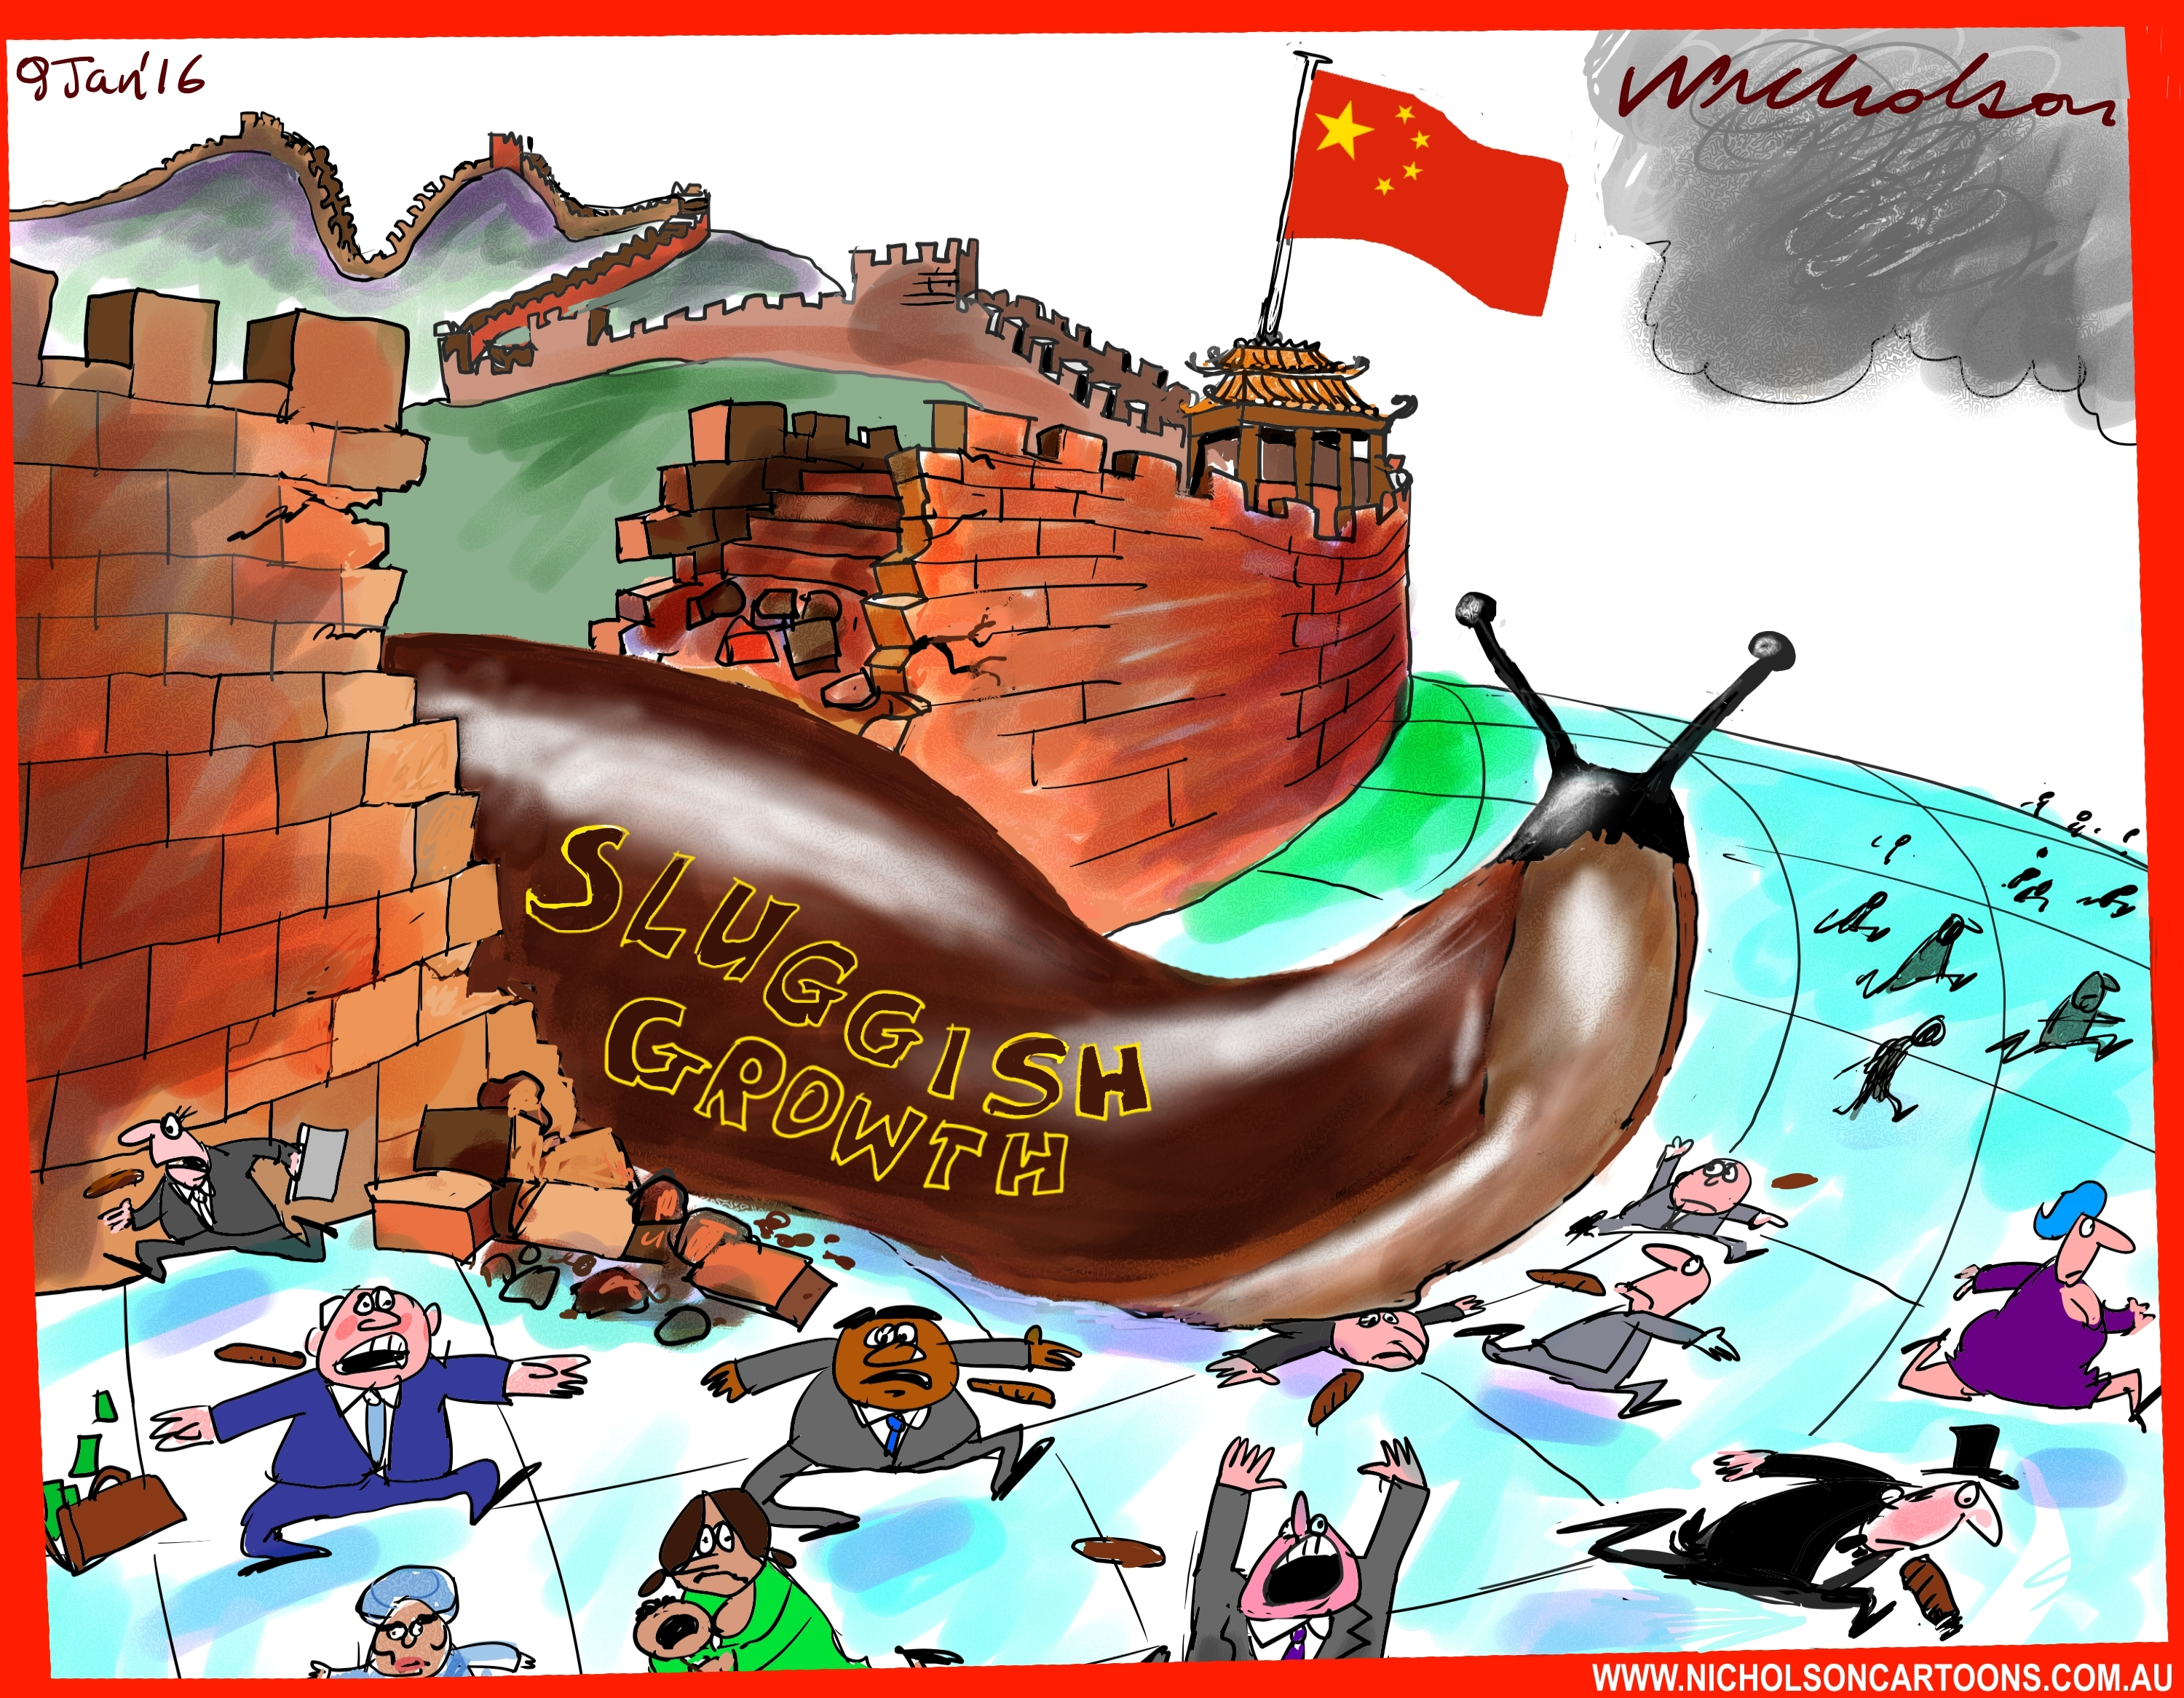 China sluggish growth hits world cartoon Austrlian business 2016-01-09